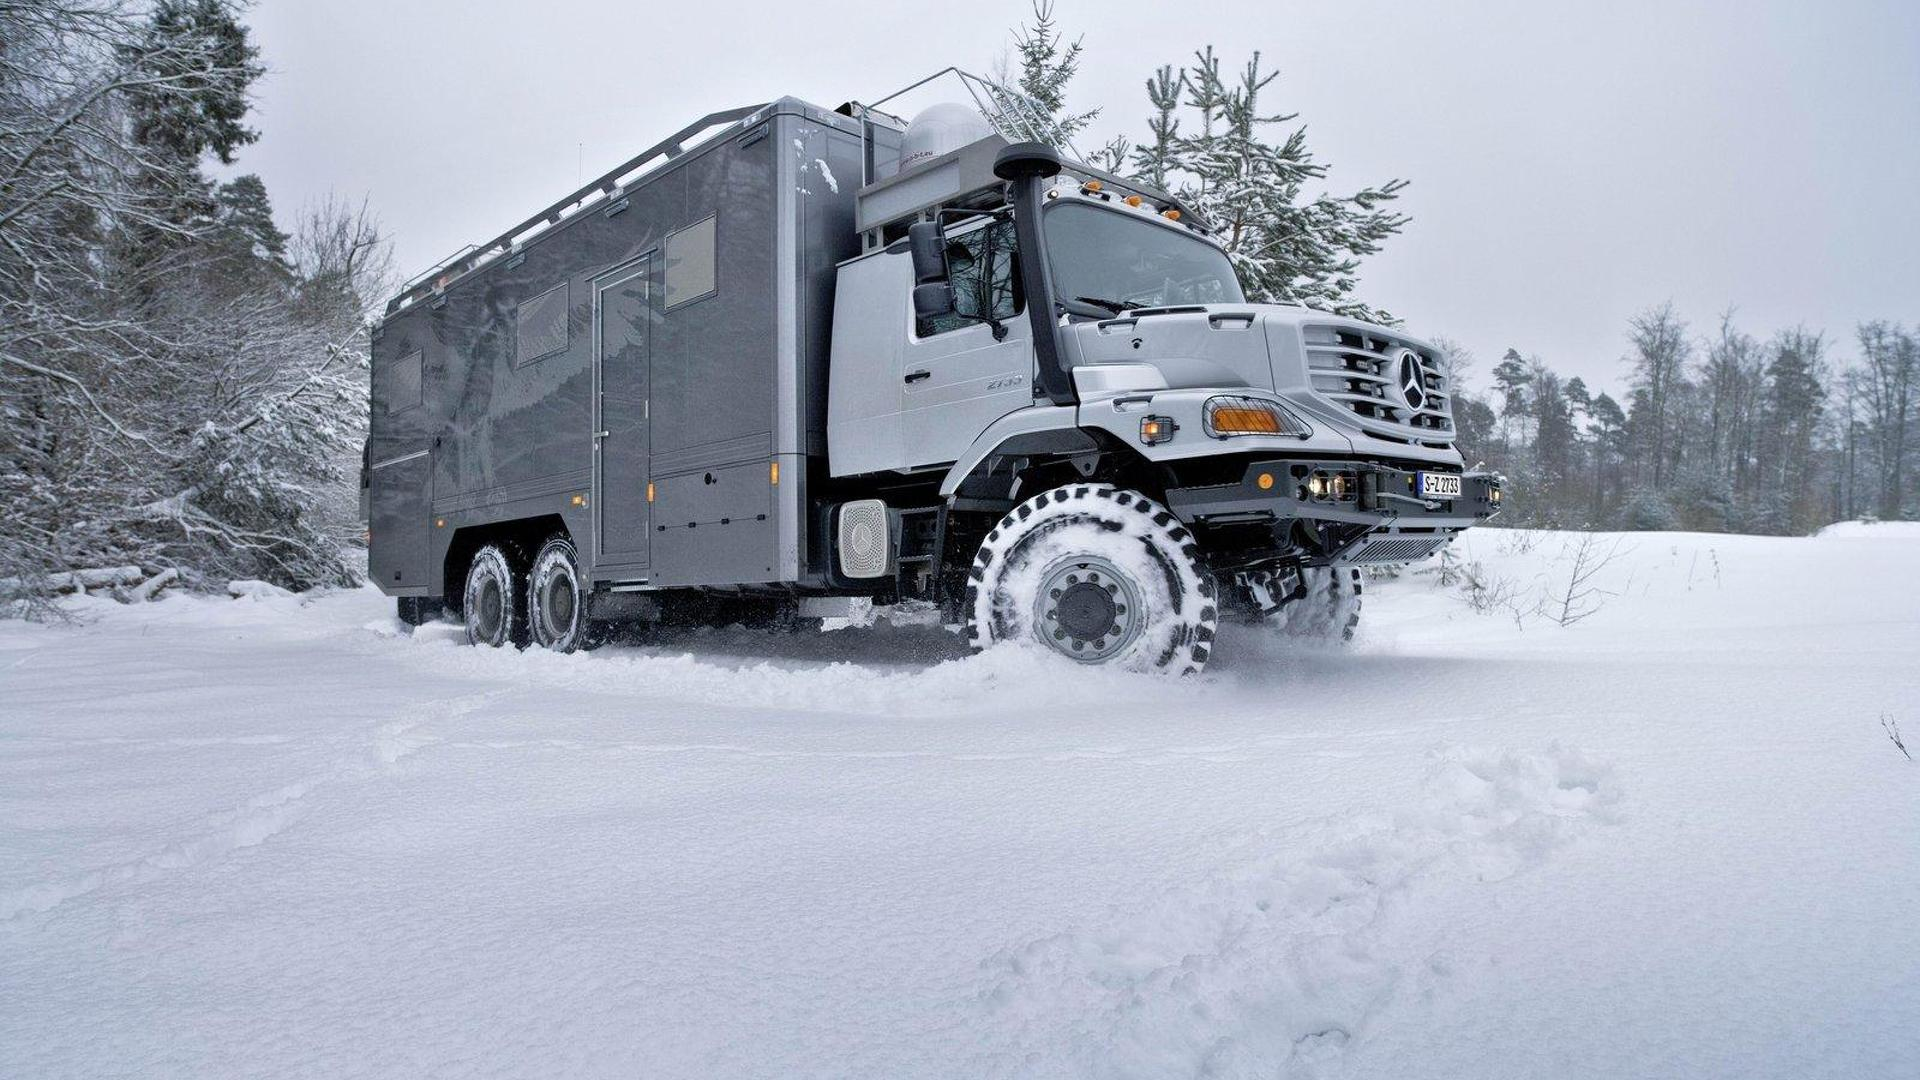 Mercedes Benz Zetros 6x6 Truck For The Mongolian Outback